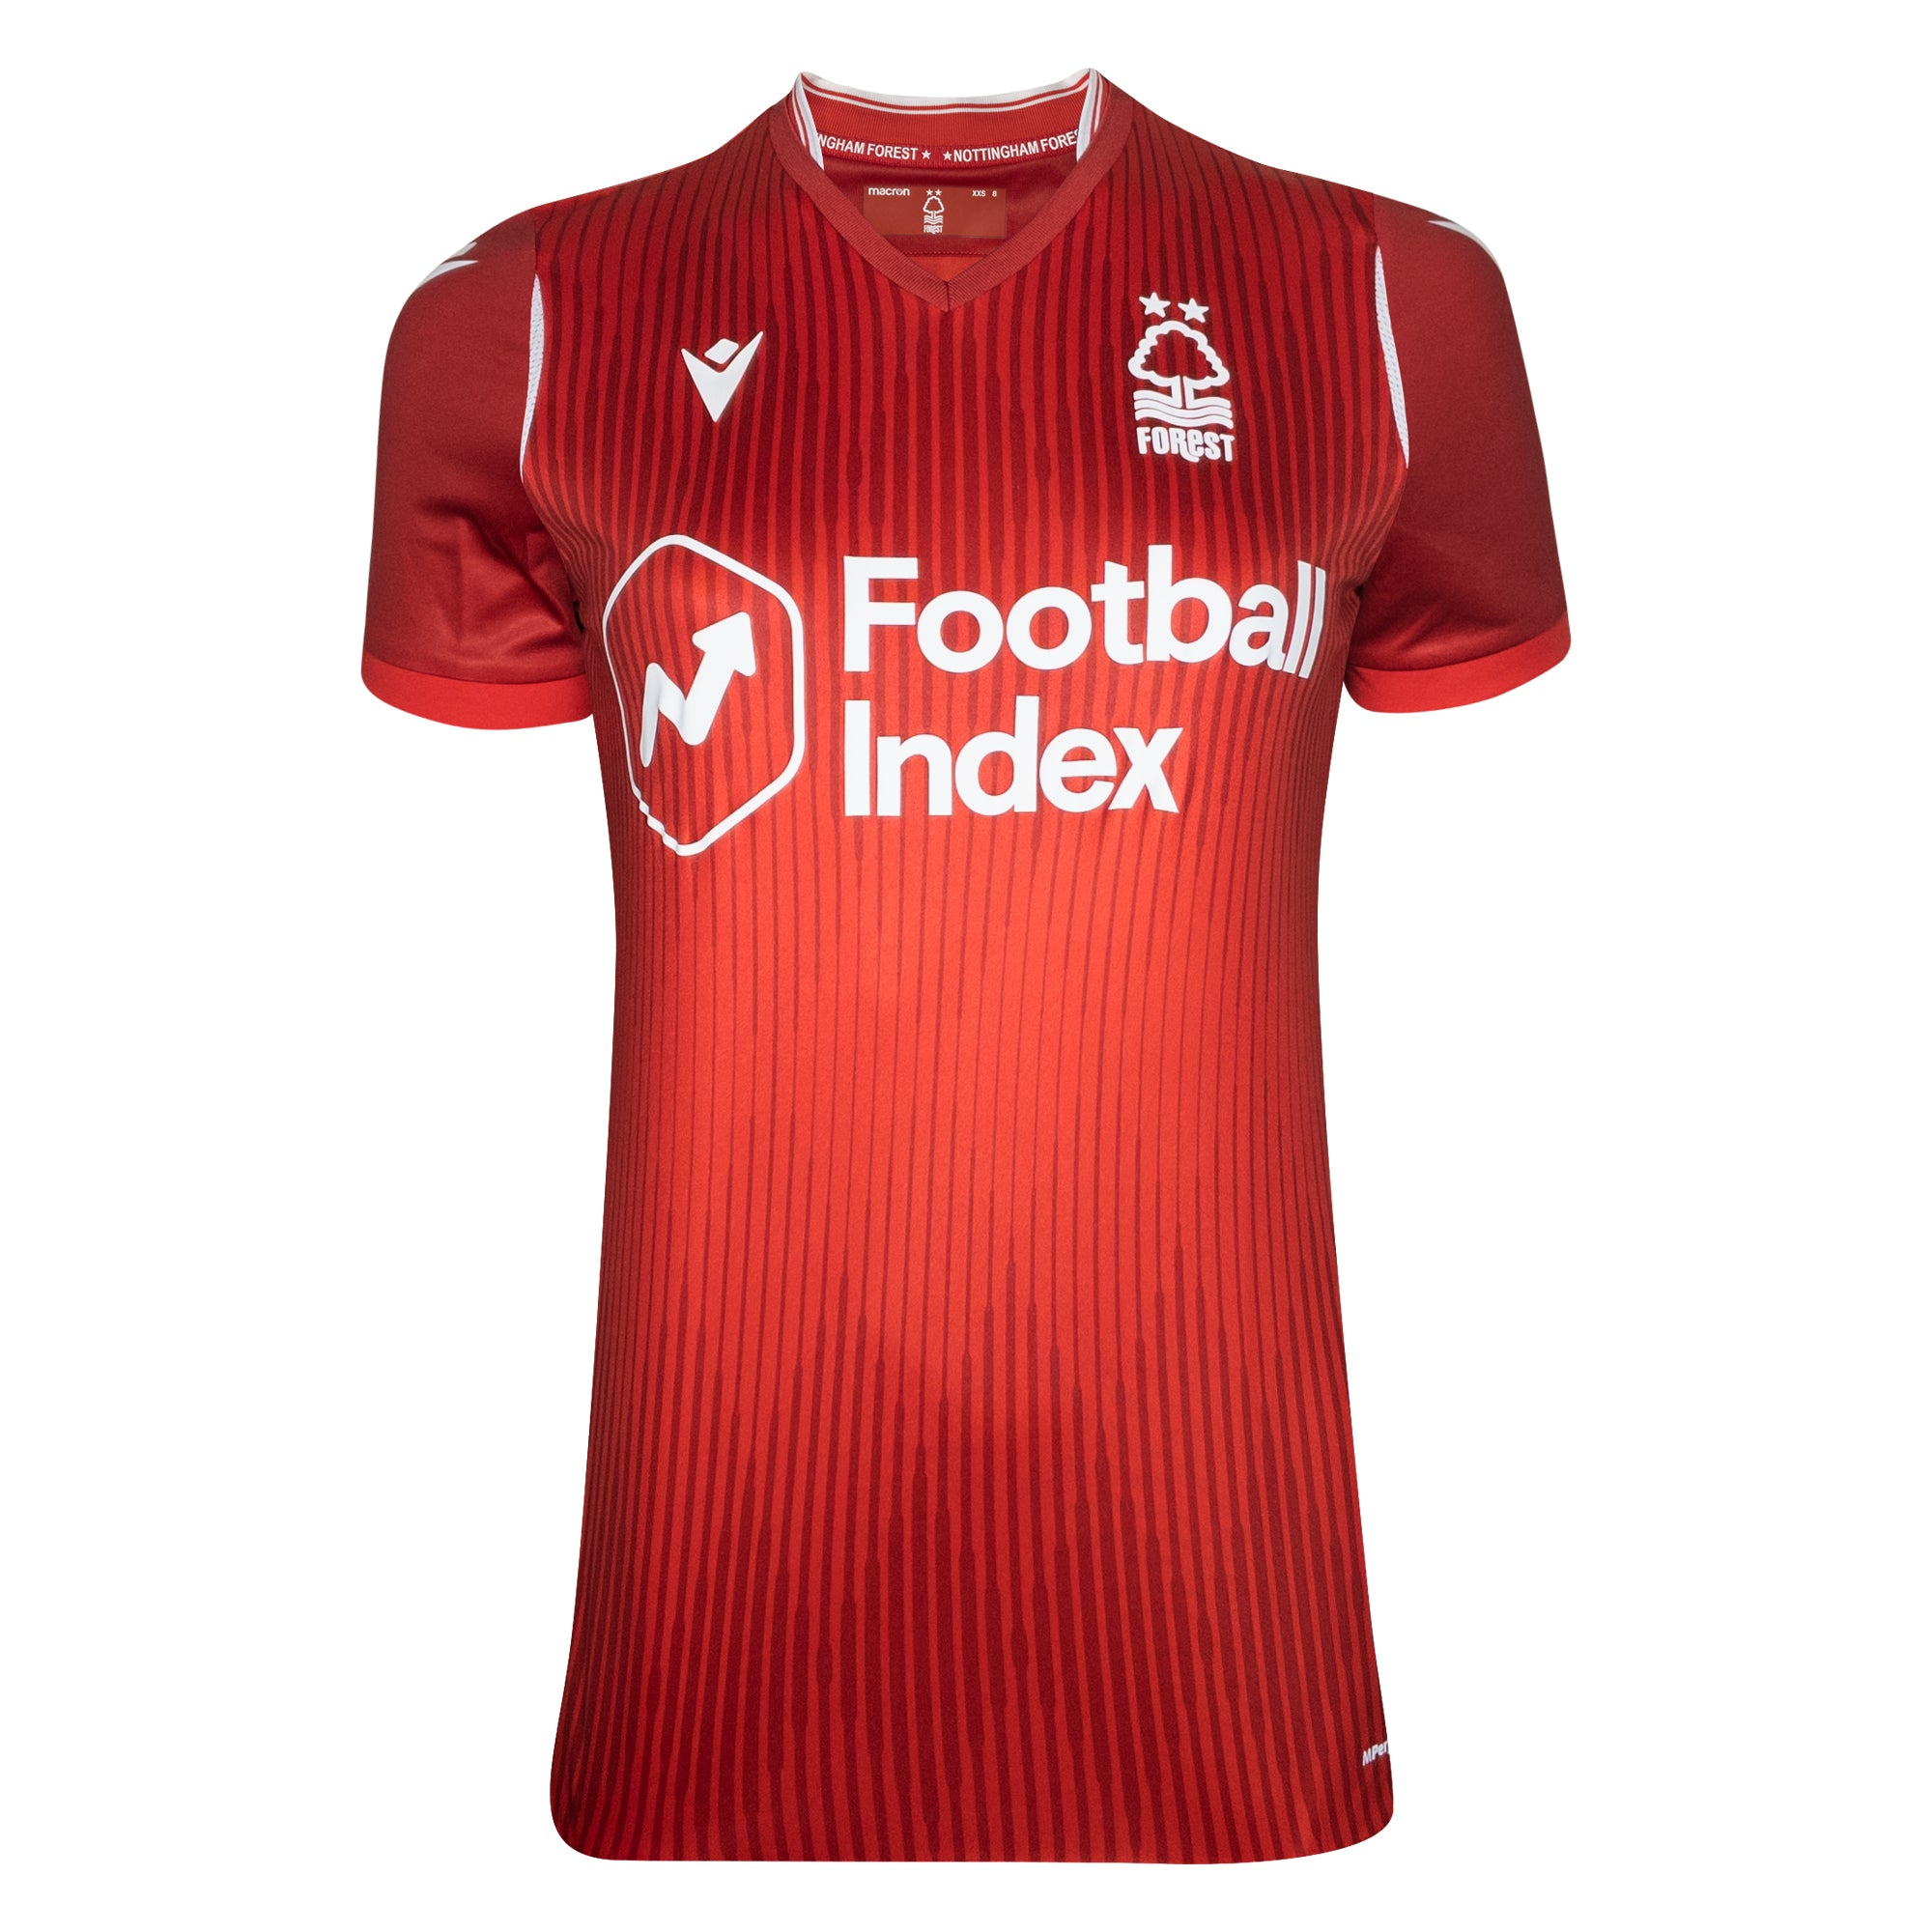 NFFC Womens Home Shirt 2019/20